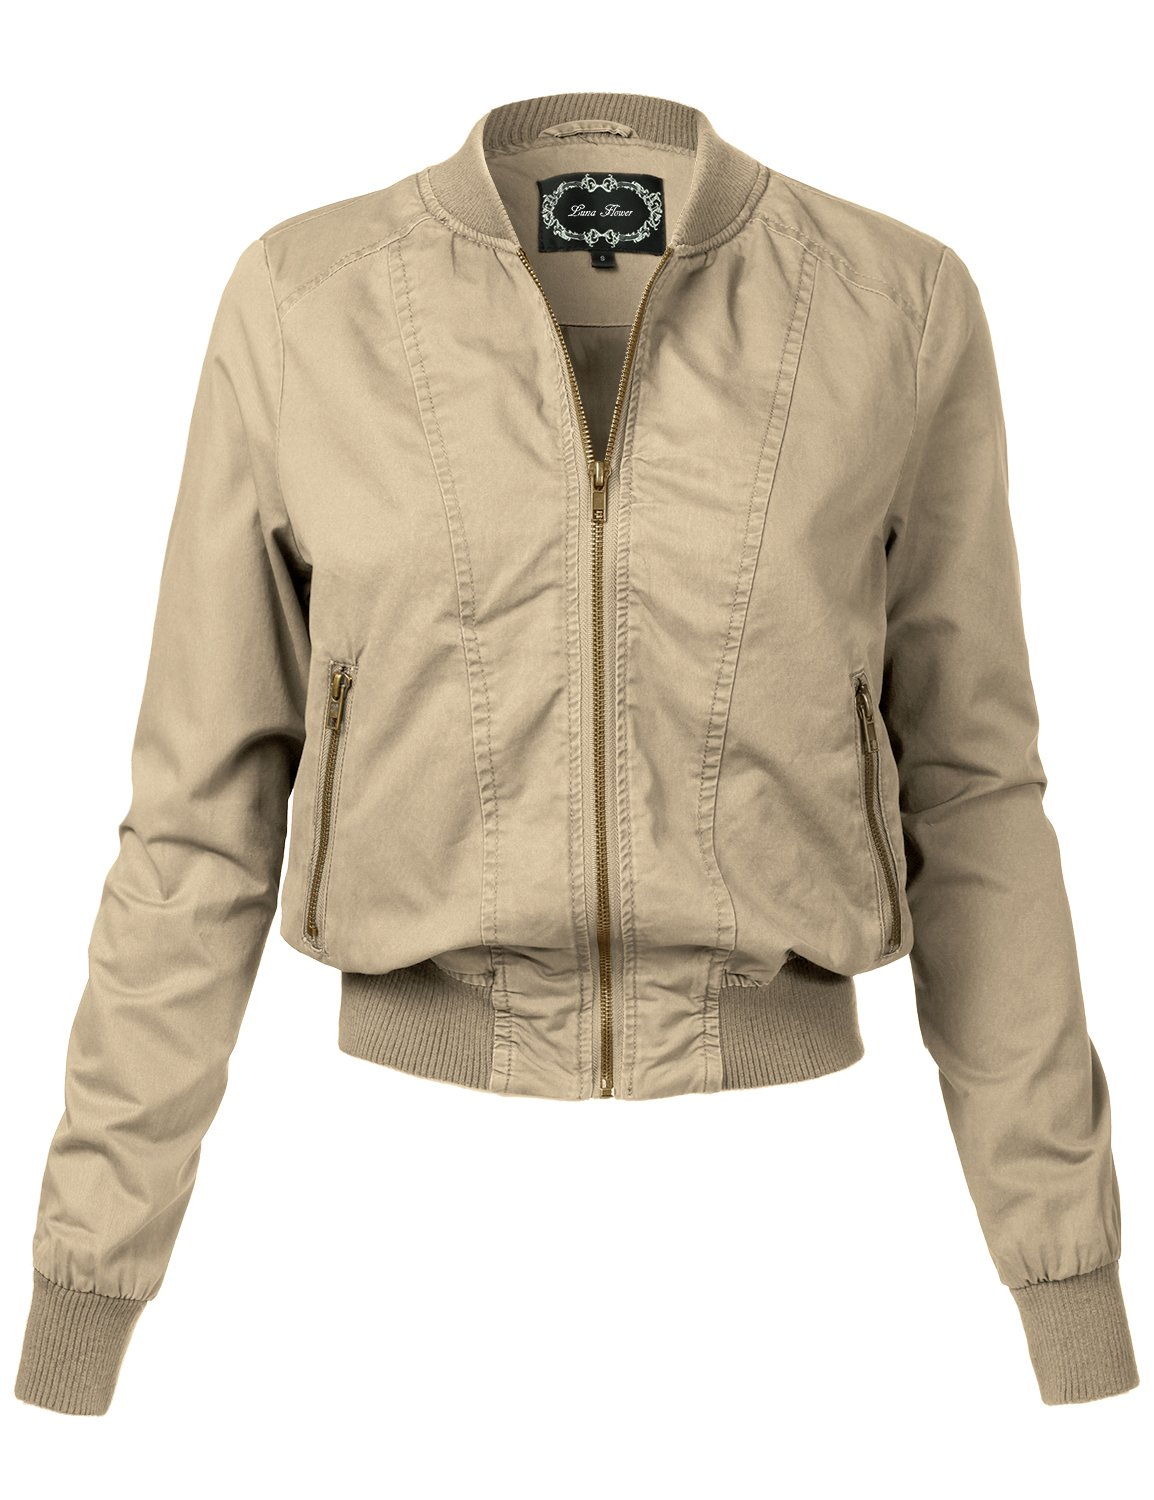 Warm Relaxed Fit Military Style Zipper Bomber Jackets, 110 - Khaki, Large